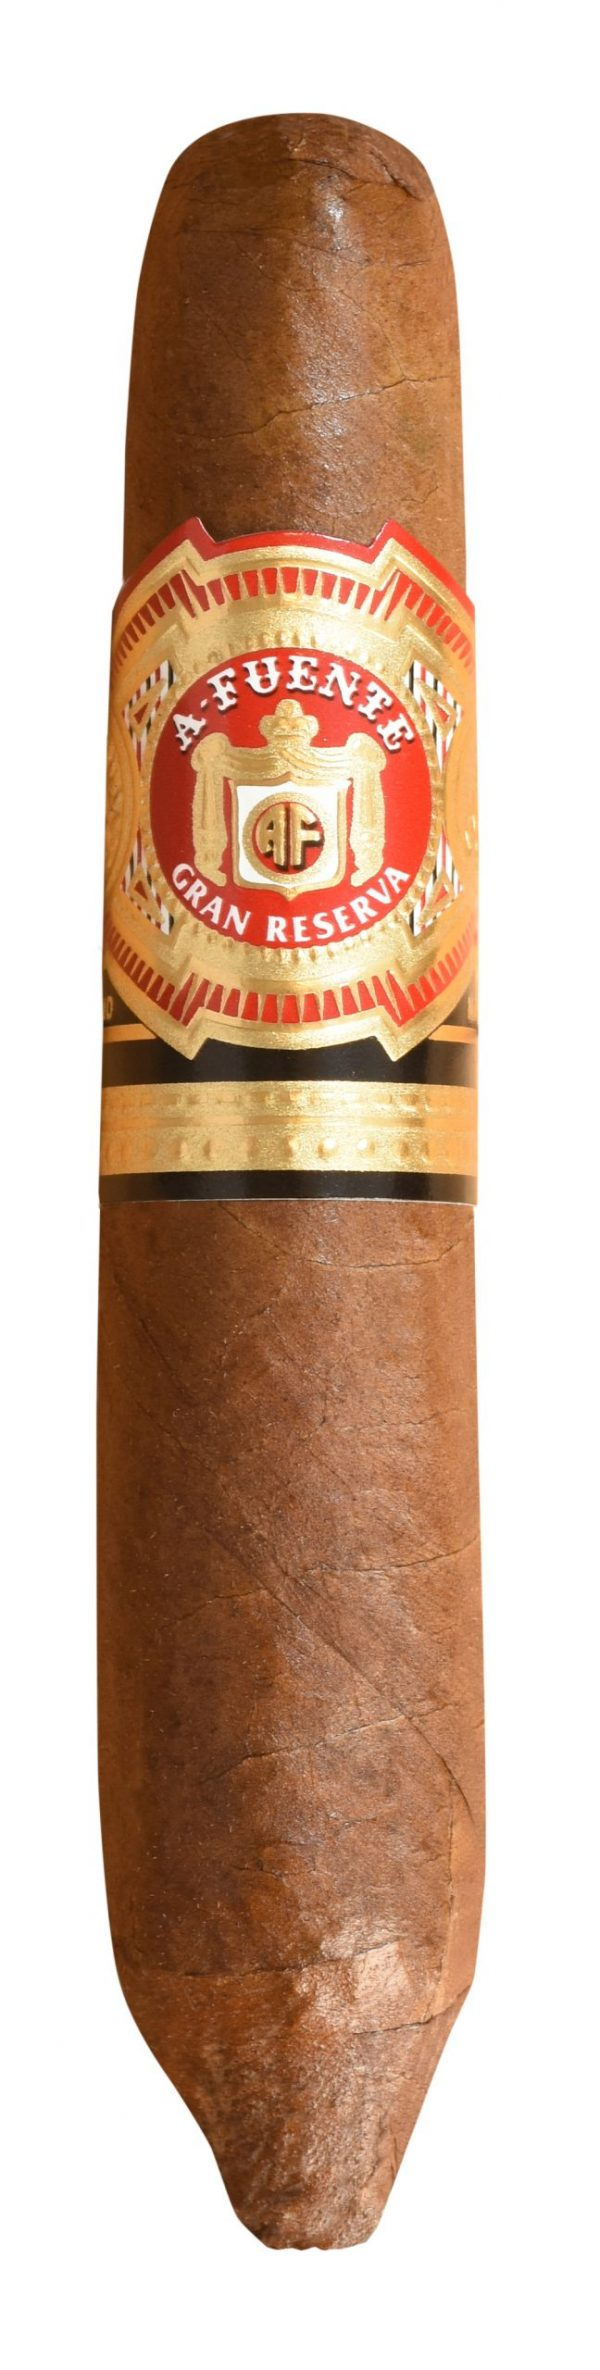 arturo fuente hemmingway short story single cigar